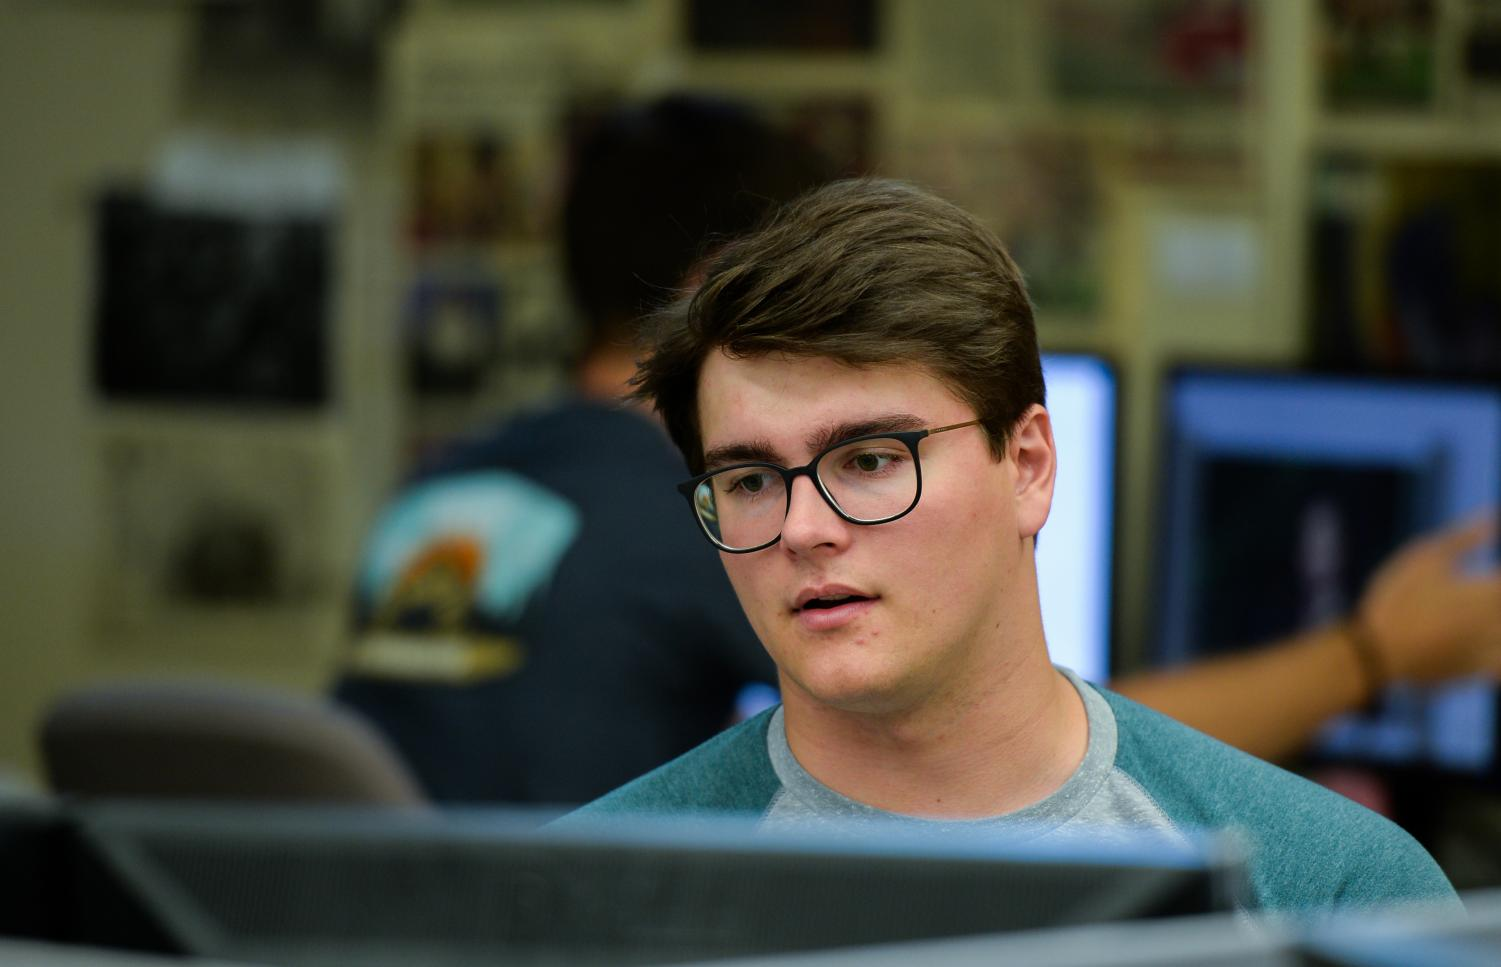 Evergreen Opinion Editor Luke Hudson reads out a column during production Tuesday night in the newsroom.